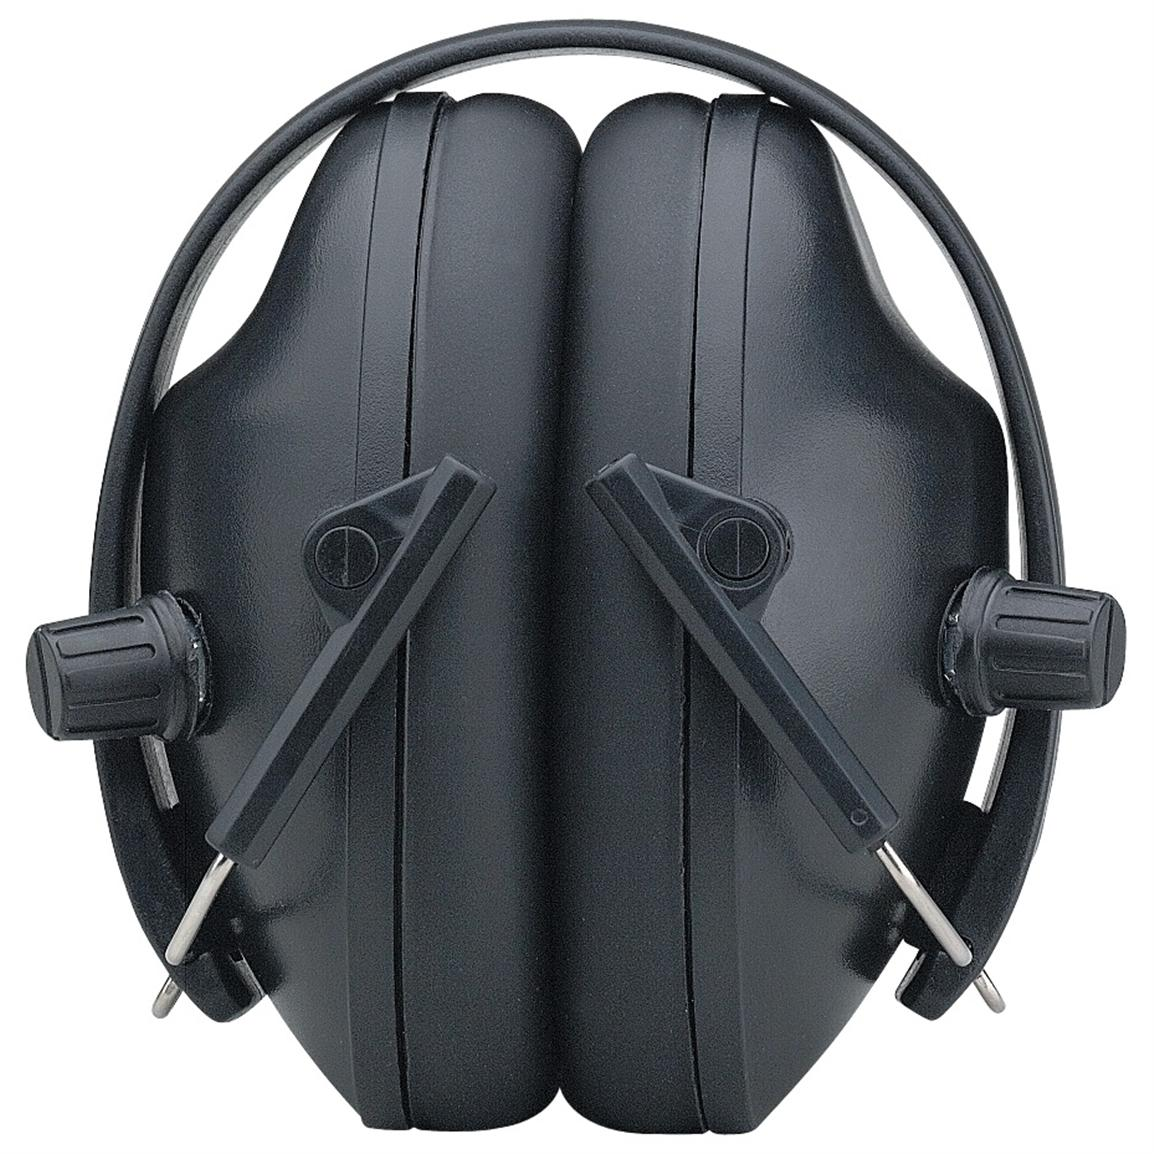 Pro Ears® Pro 200 Hearing Protection and Amplification Ear Muffs